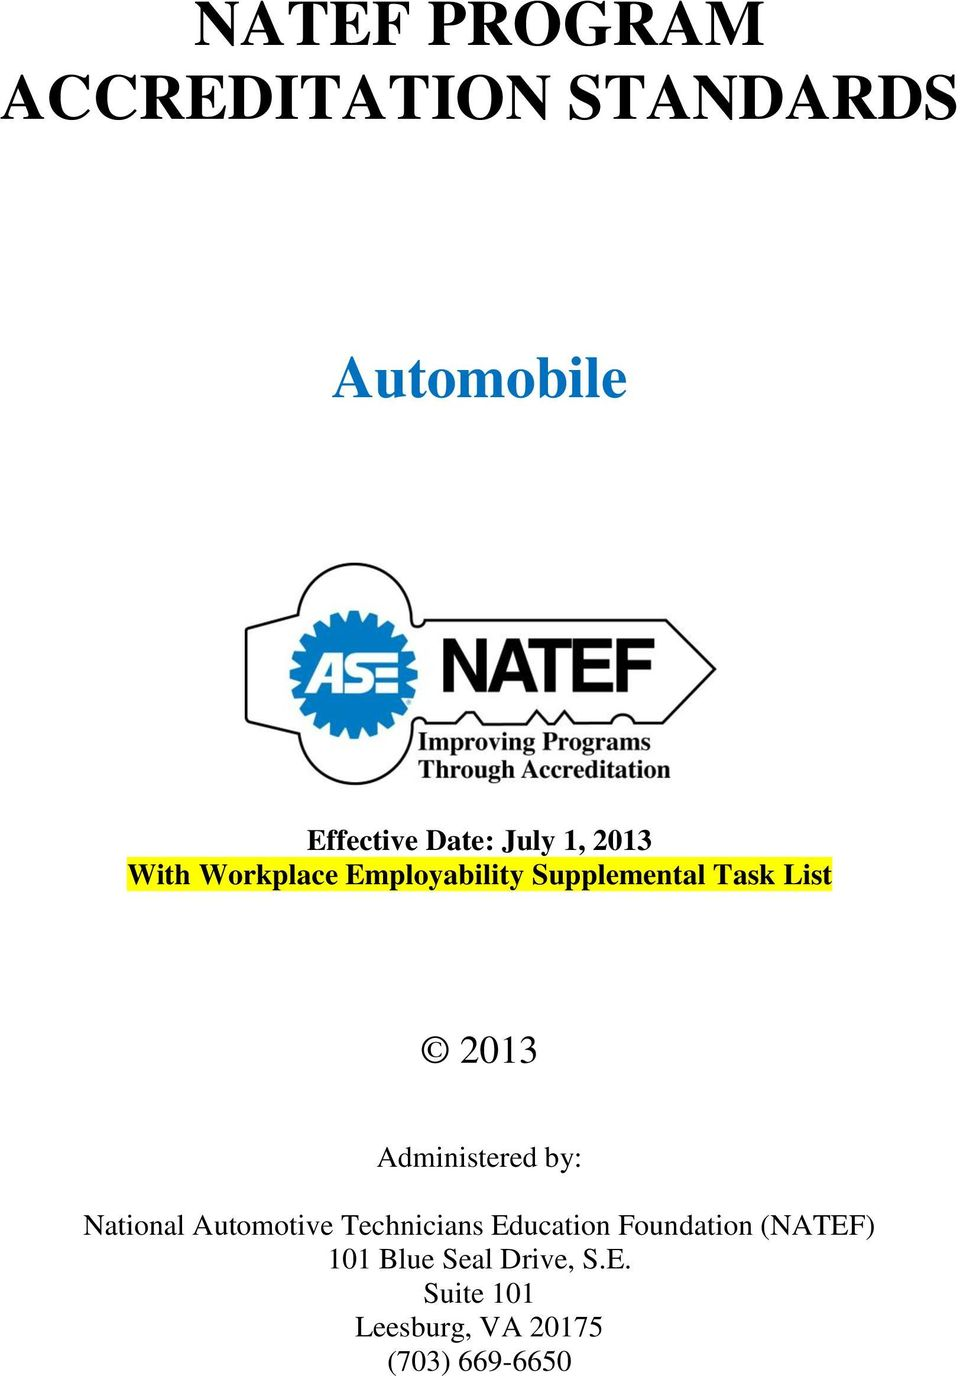 Natef Program Accreditation Standards Pdf